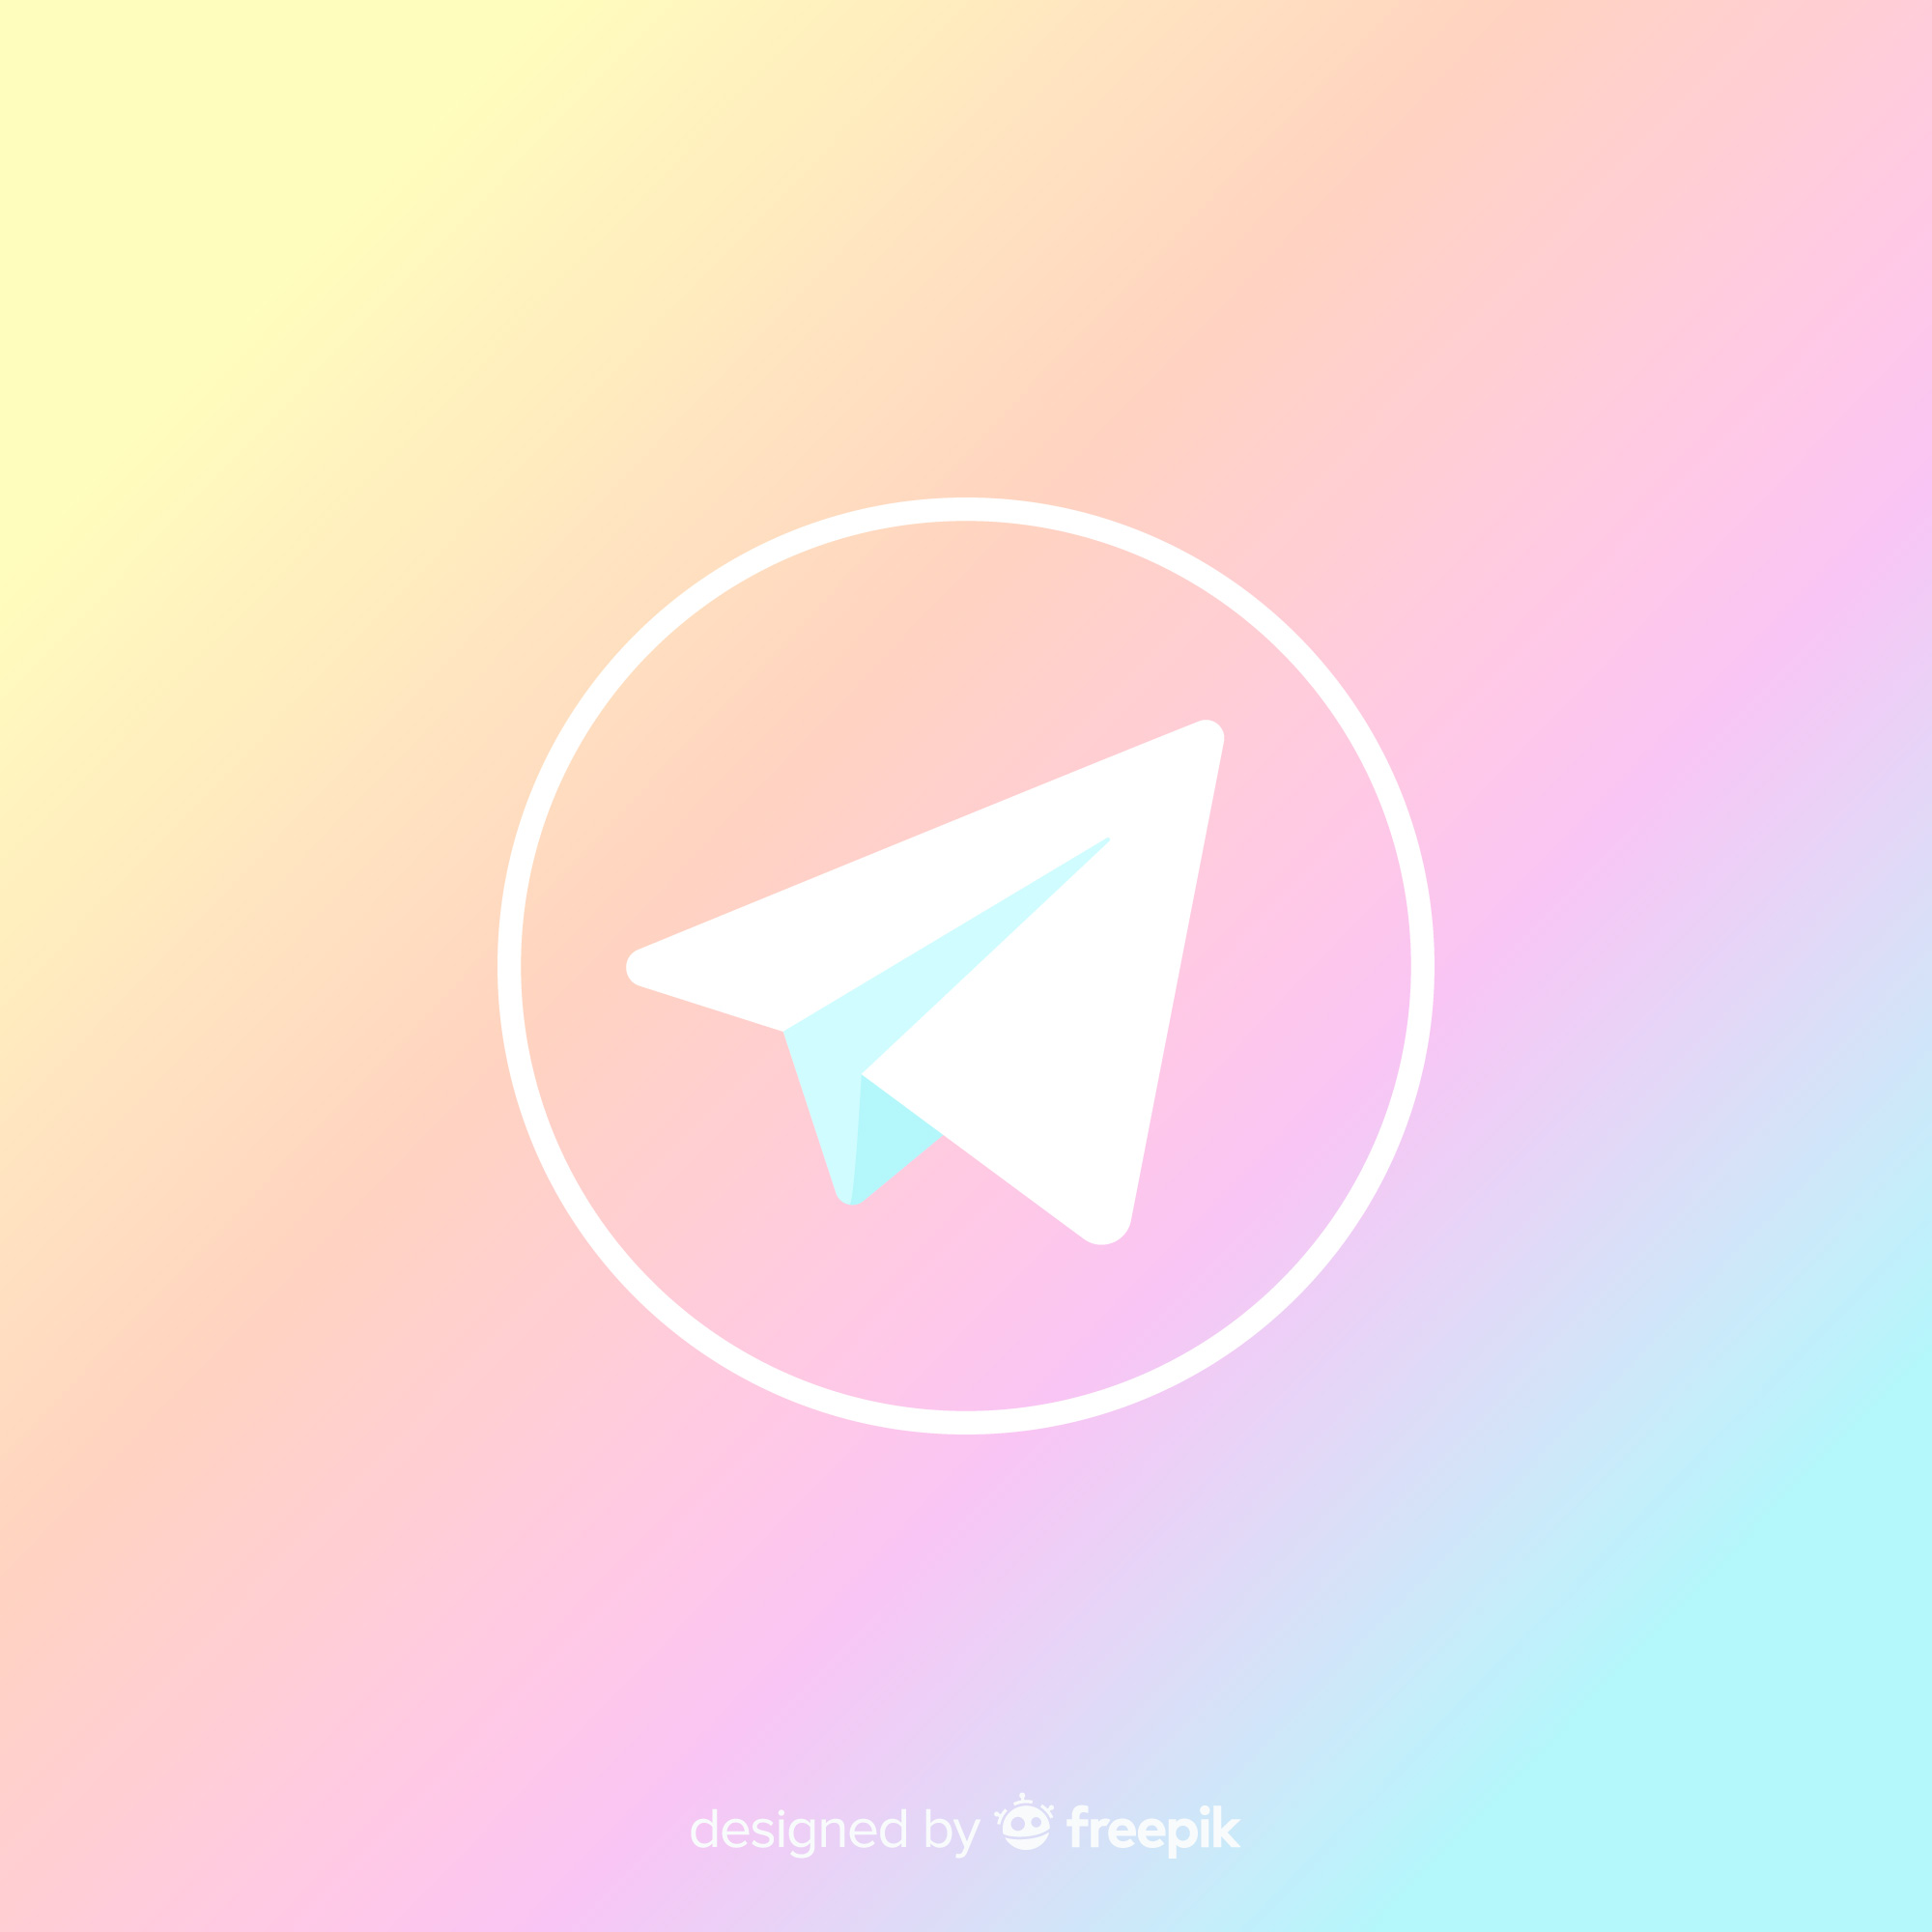 Reasons why you might want to switch to Telegram